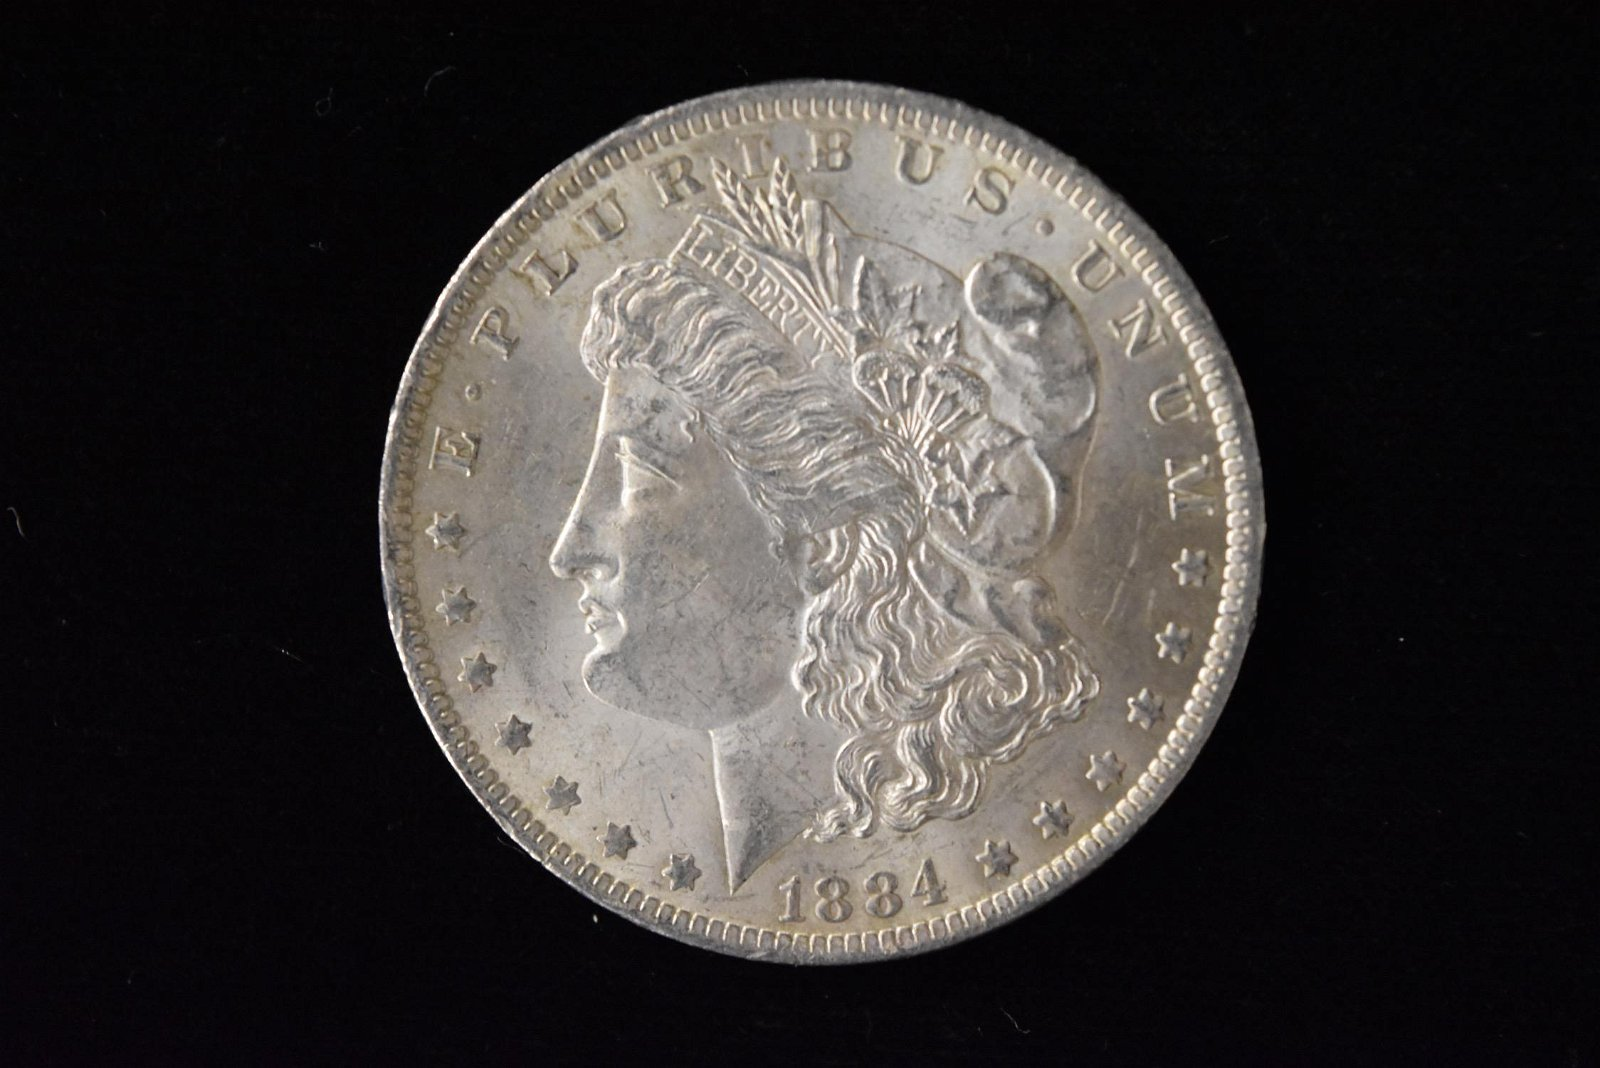 1884 High Grade Morgan Silver Dollar Grade By Picture.